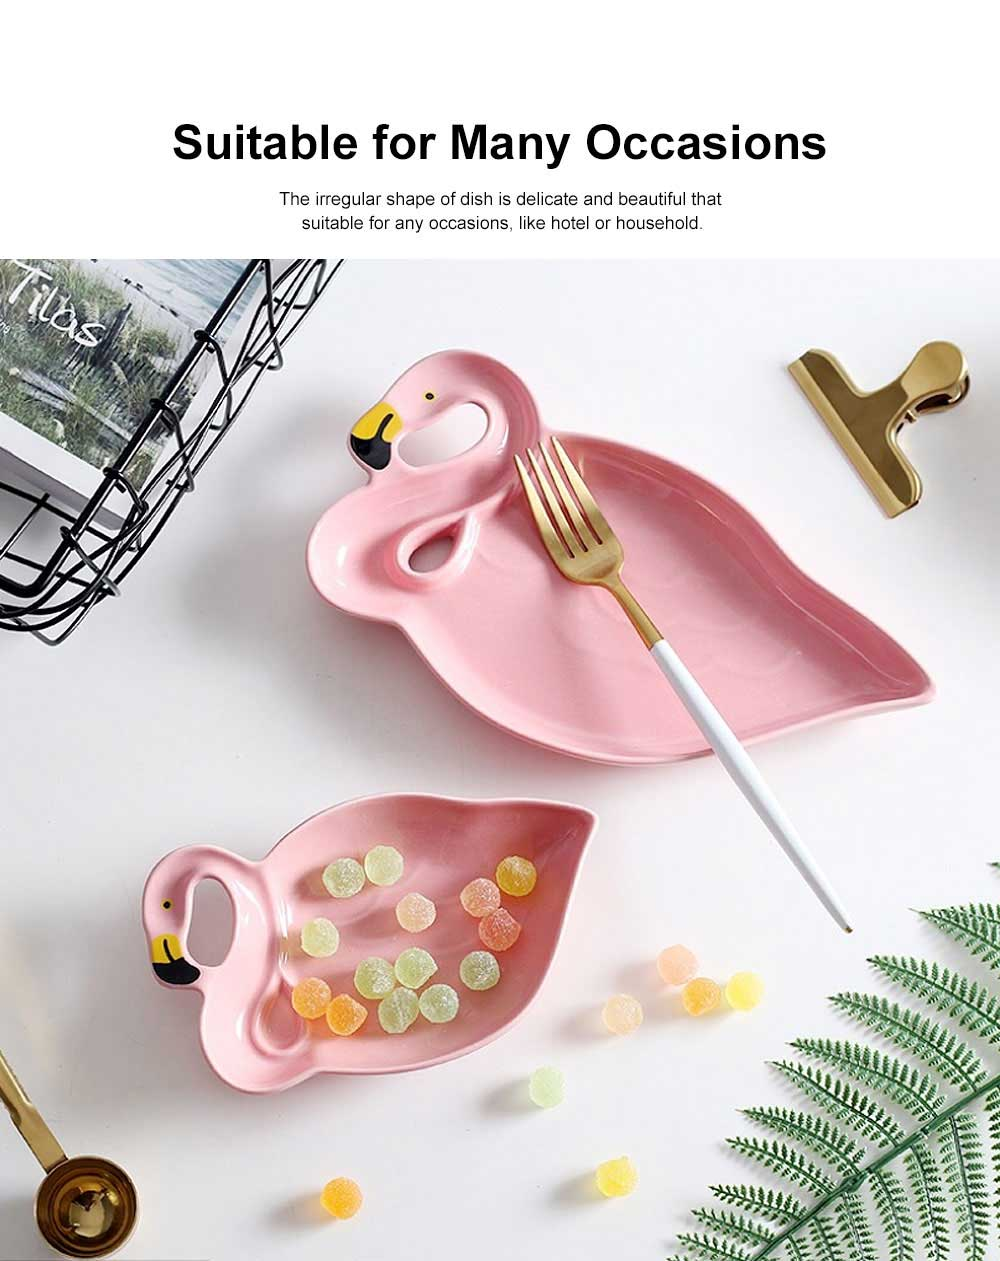 Porcelain Plate Flamingo Shape Hollow-ware for Rice Snacks Elegant Tray Irregular Dish 3